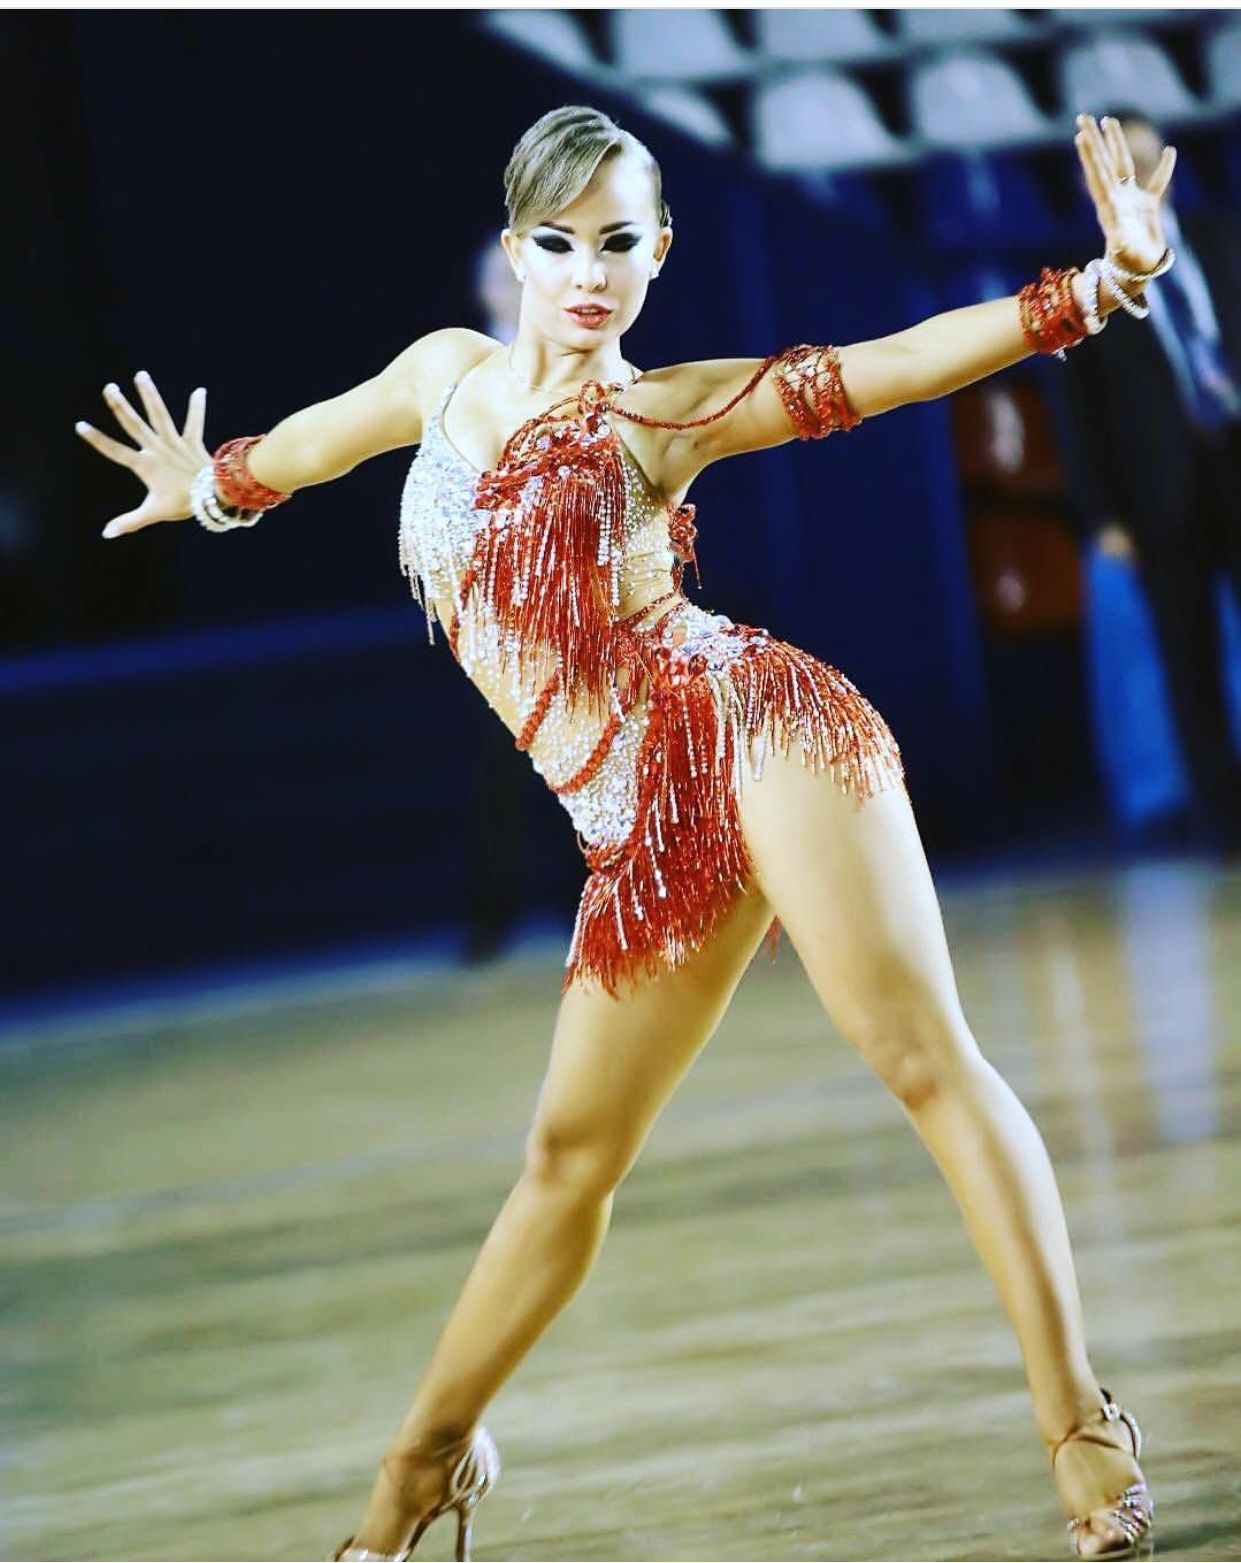 Pin by Marie Righetti on Costume in 2019 Salsa dancing